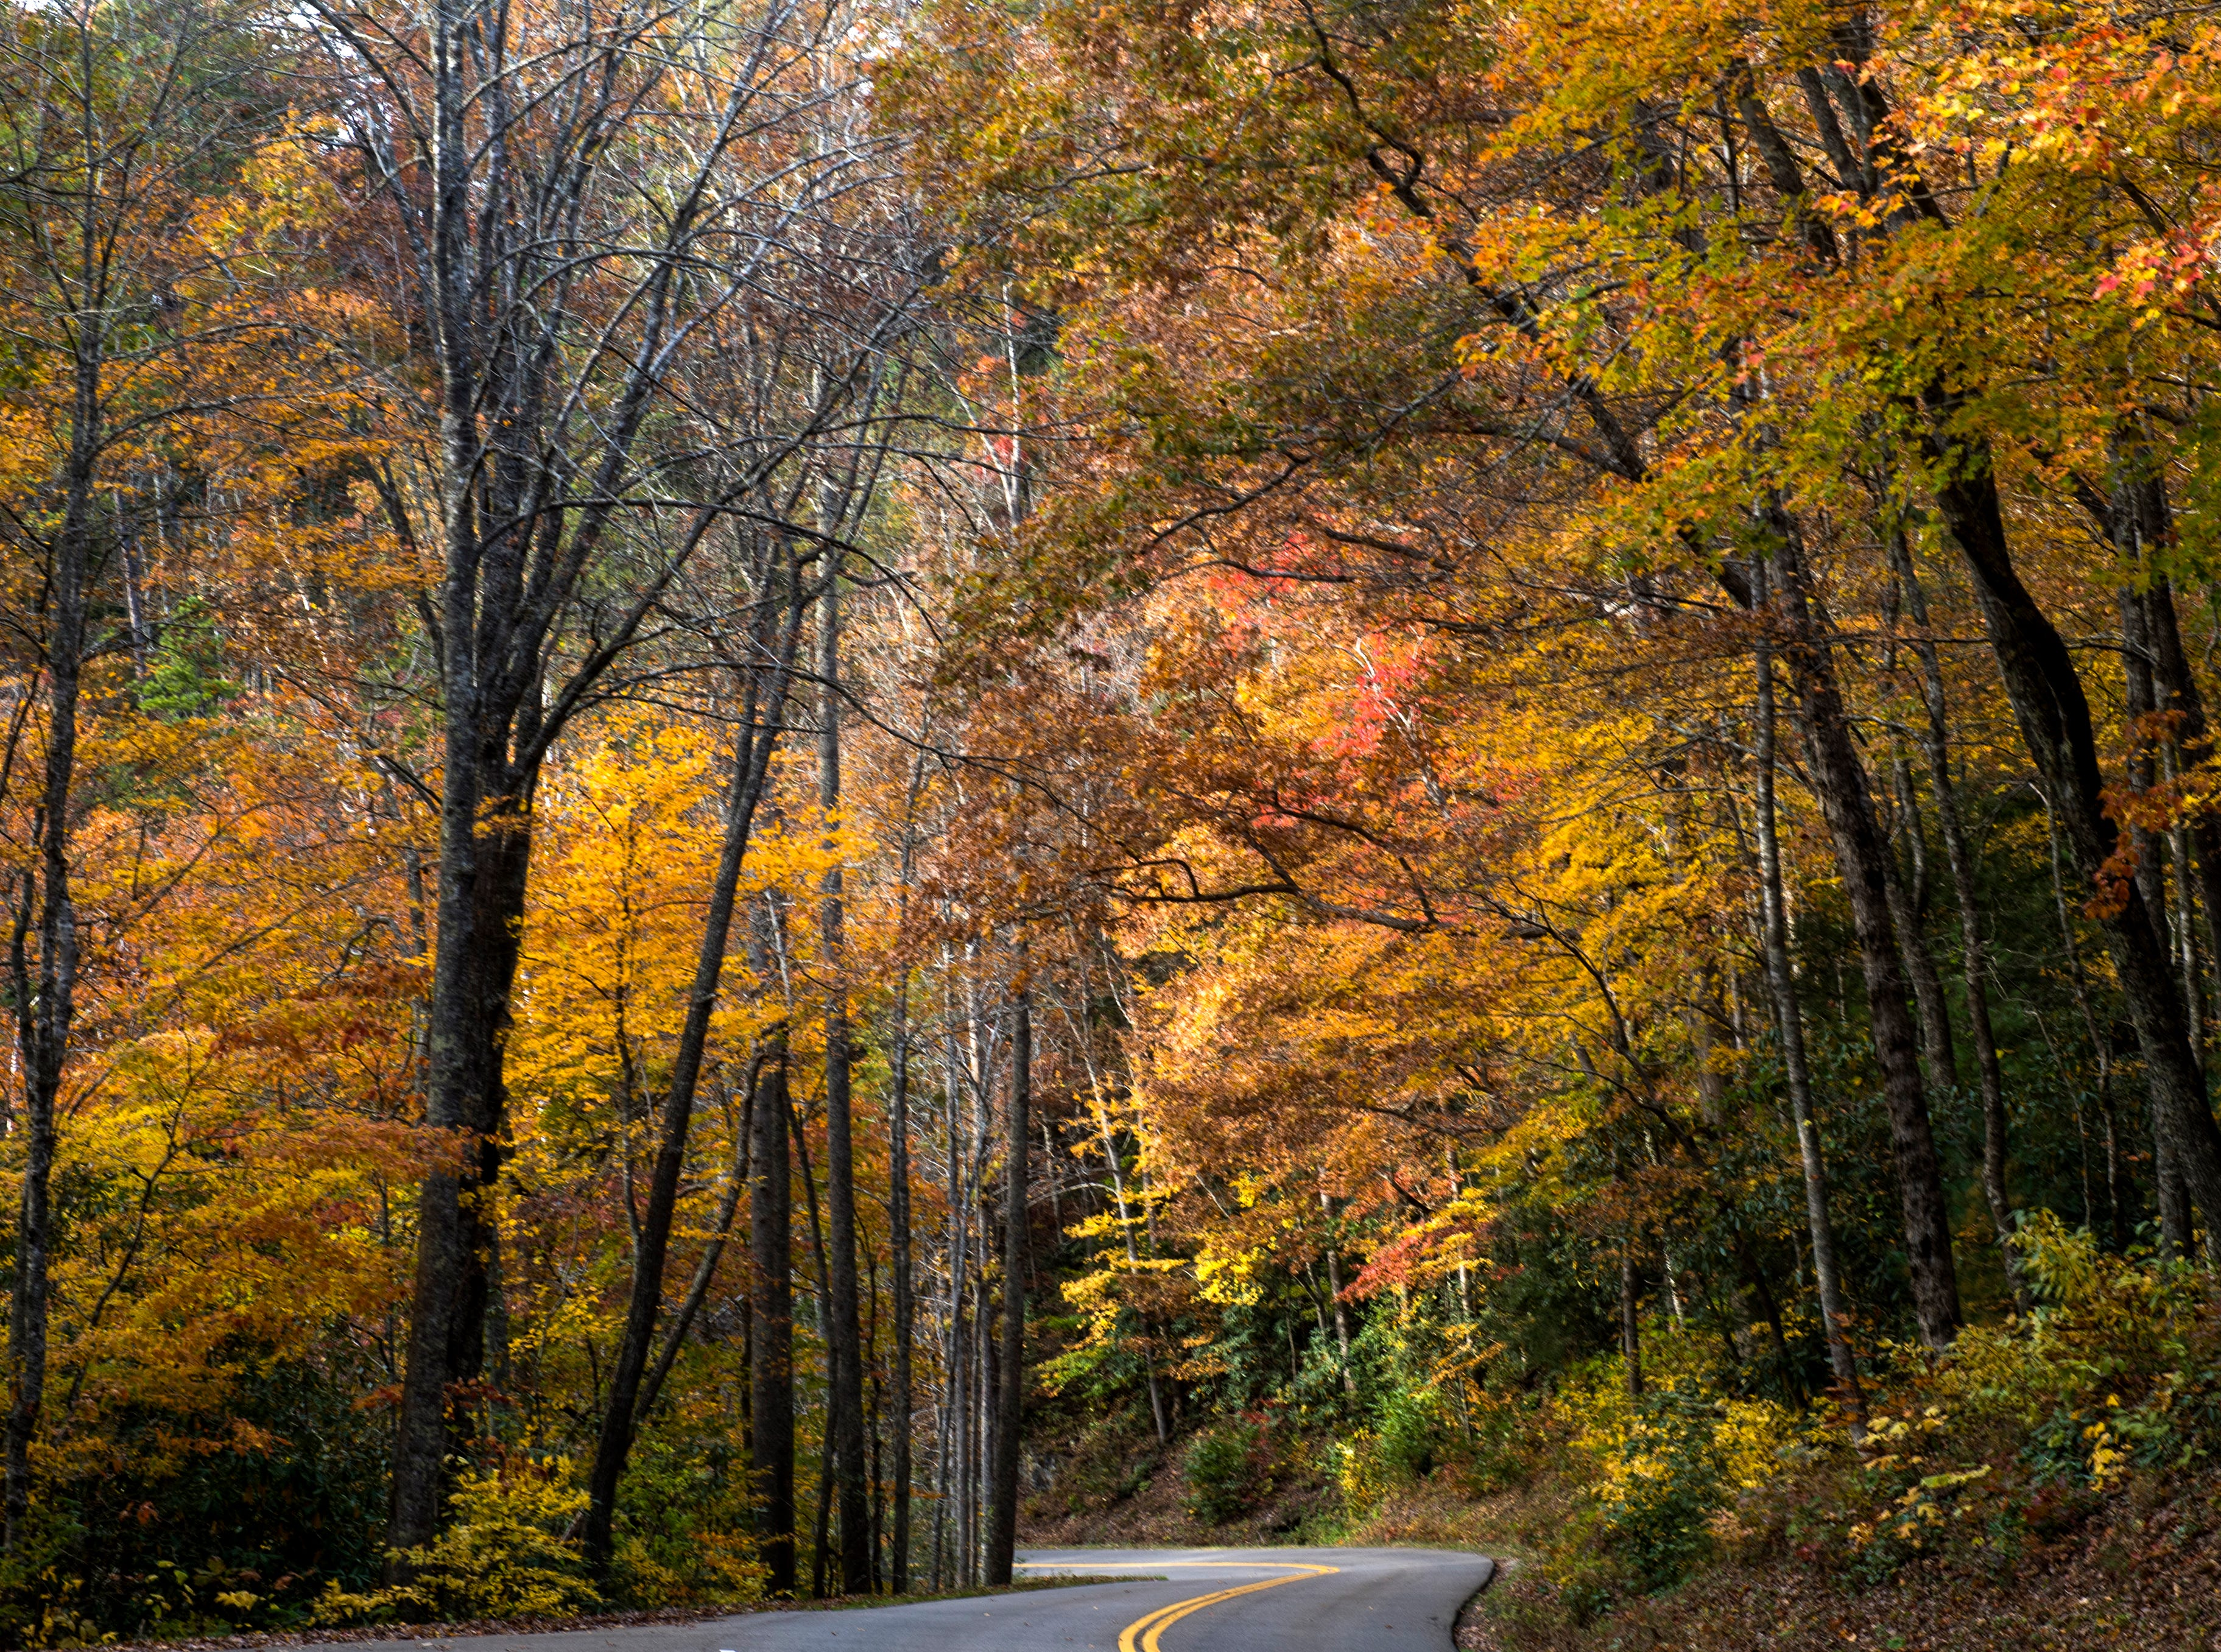 Fall foliage surrounds Little River Gorge Road in the Great Smoky Mountains National Park on Sunday, November 4, 2018.